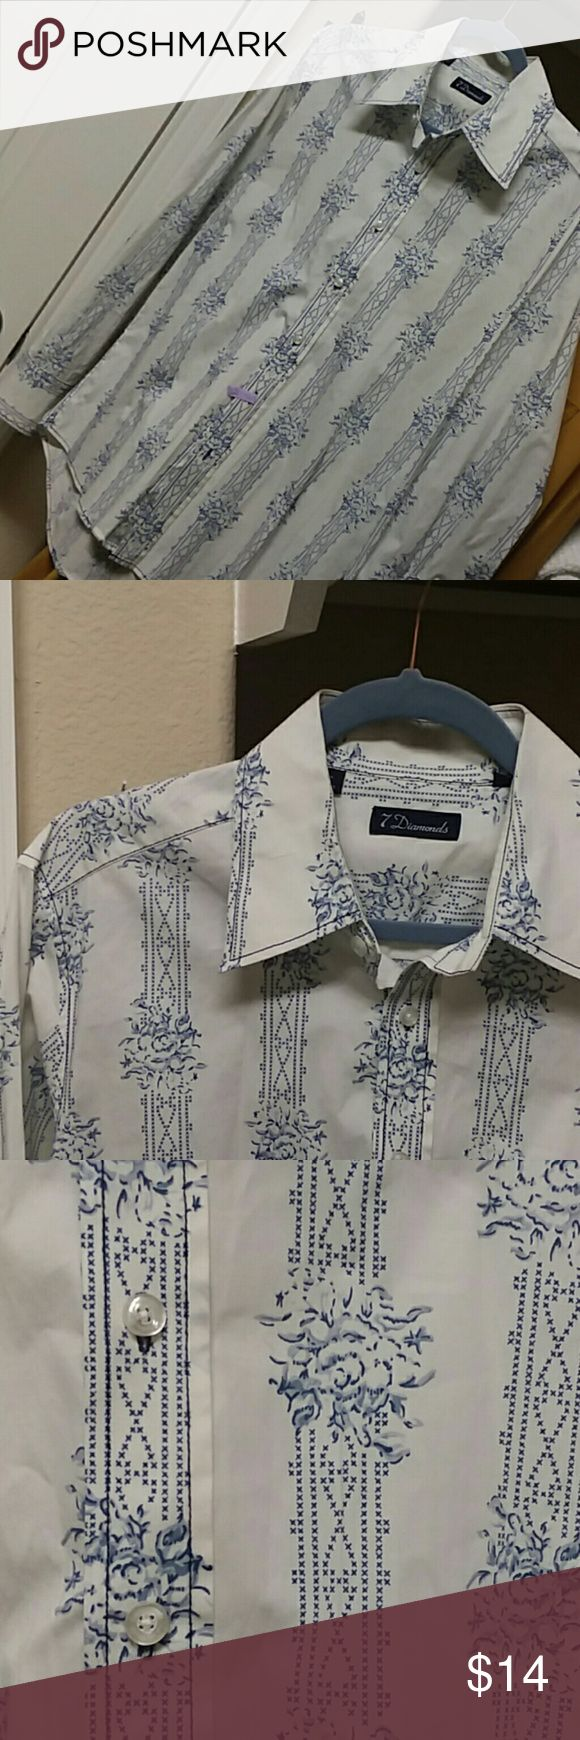 😎Men's 7 Diamonds button down 7 Diamonds line from Nordstrom Perfect condition!!!!!! Fantastic pattern Like new!!!!!! Colors in pics are true to shirt! Dry cleaned  HAVE FUN!!!!!! 7 Diamonds Shirts